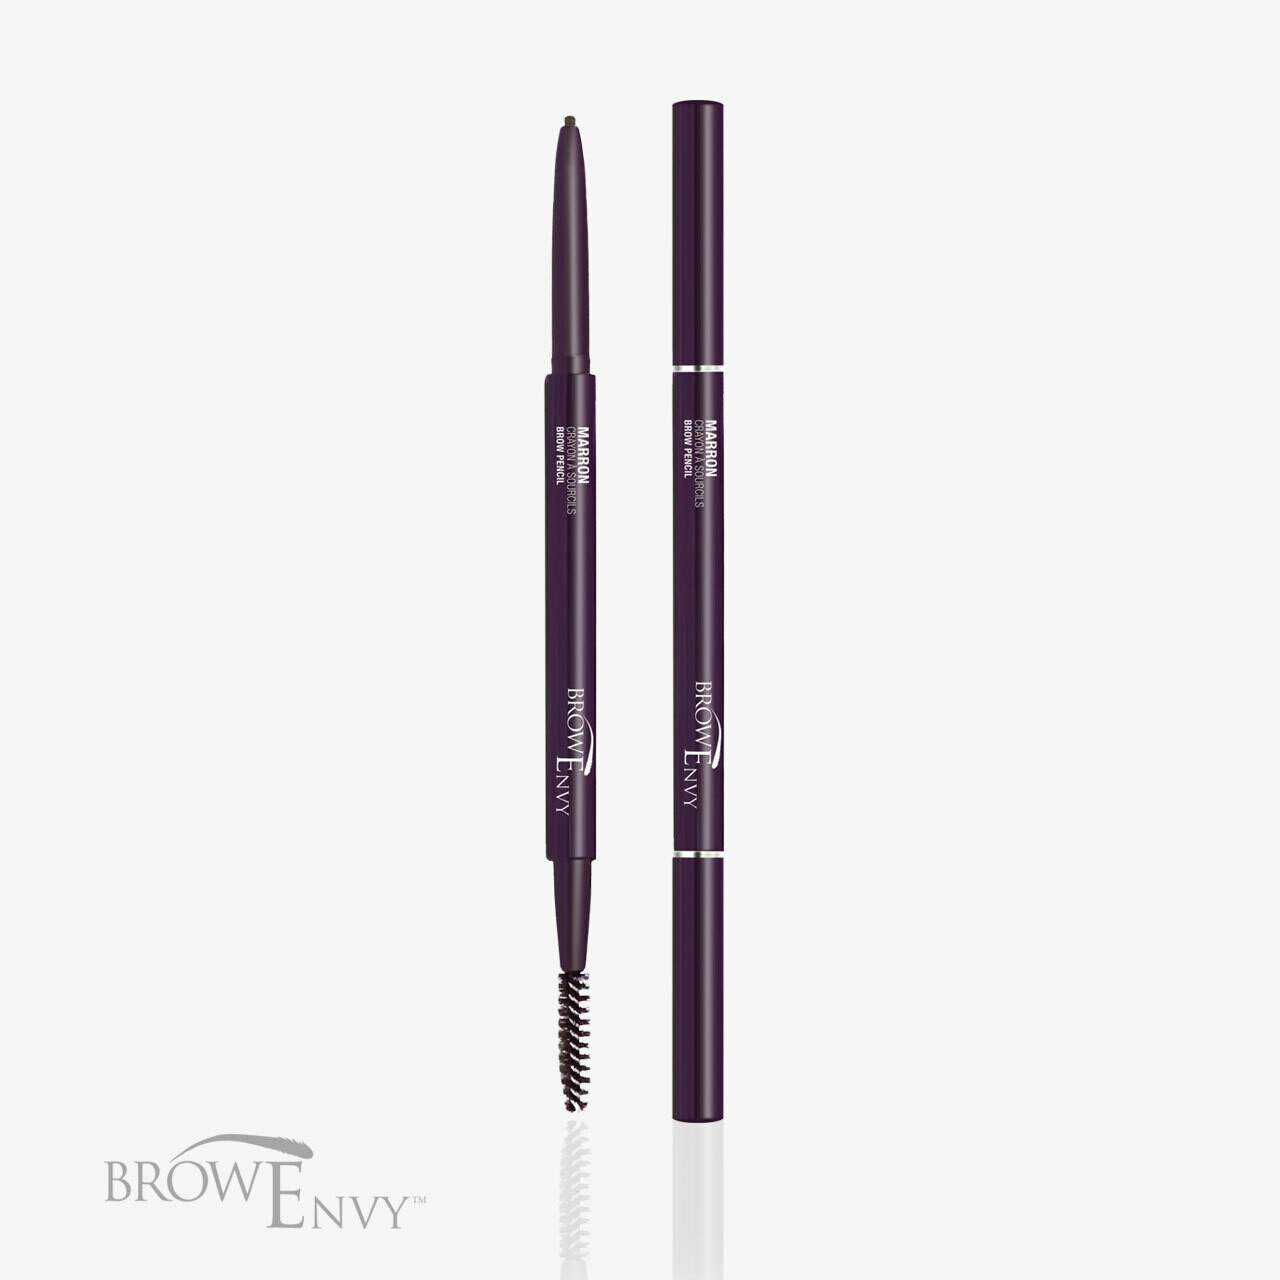 BrowEnvy Eyebrow Pencil - Ash Blonde